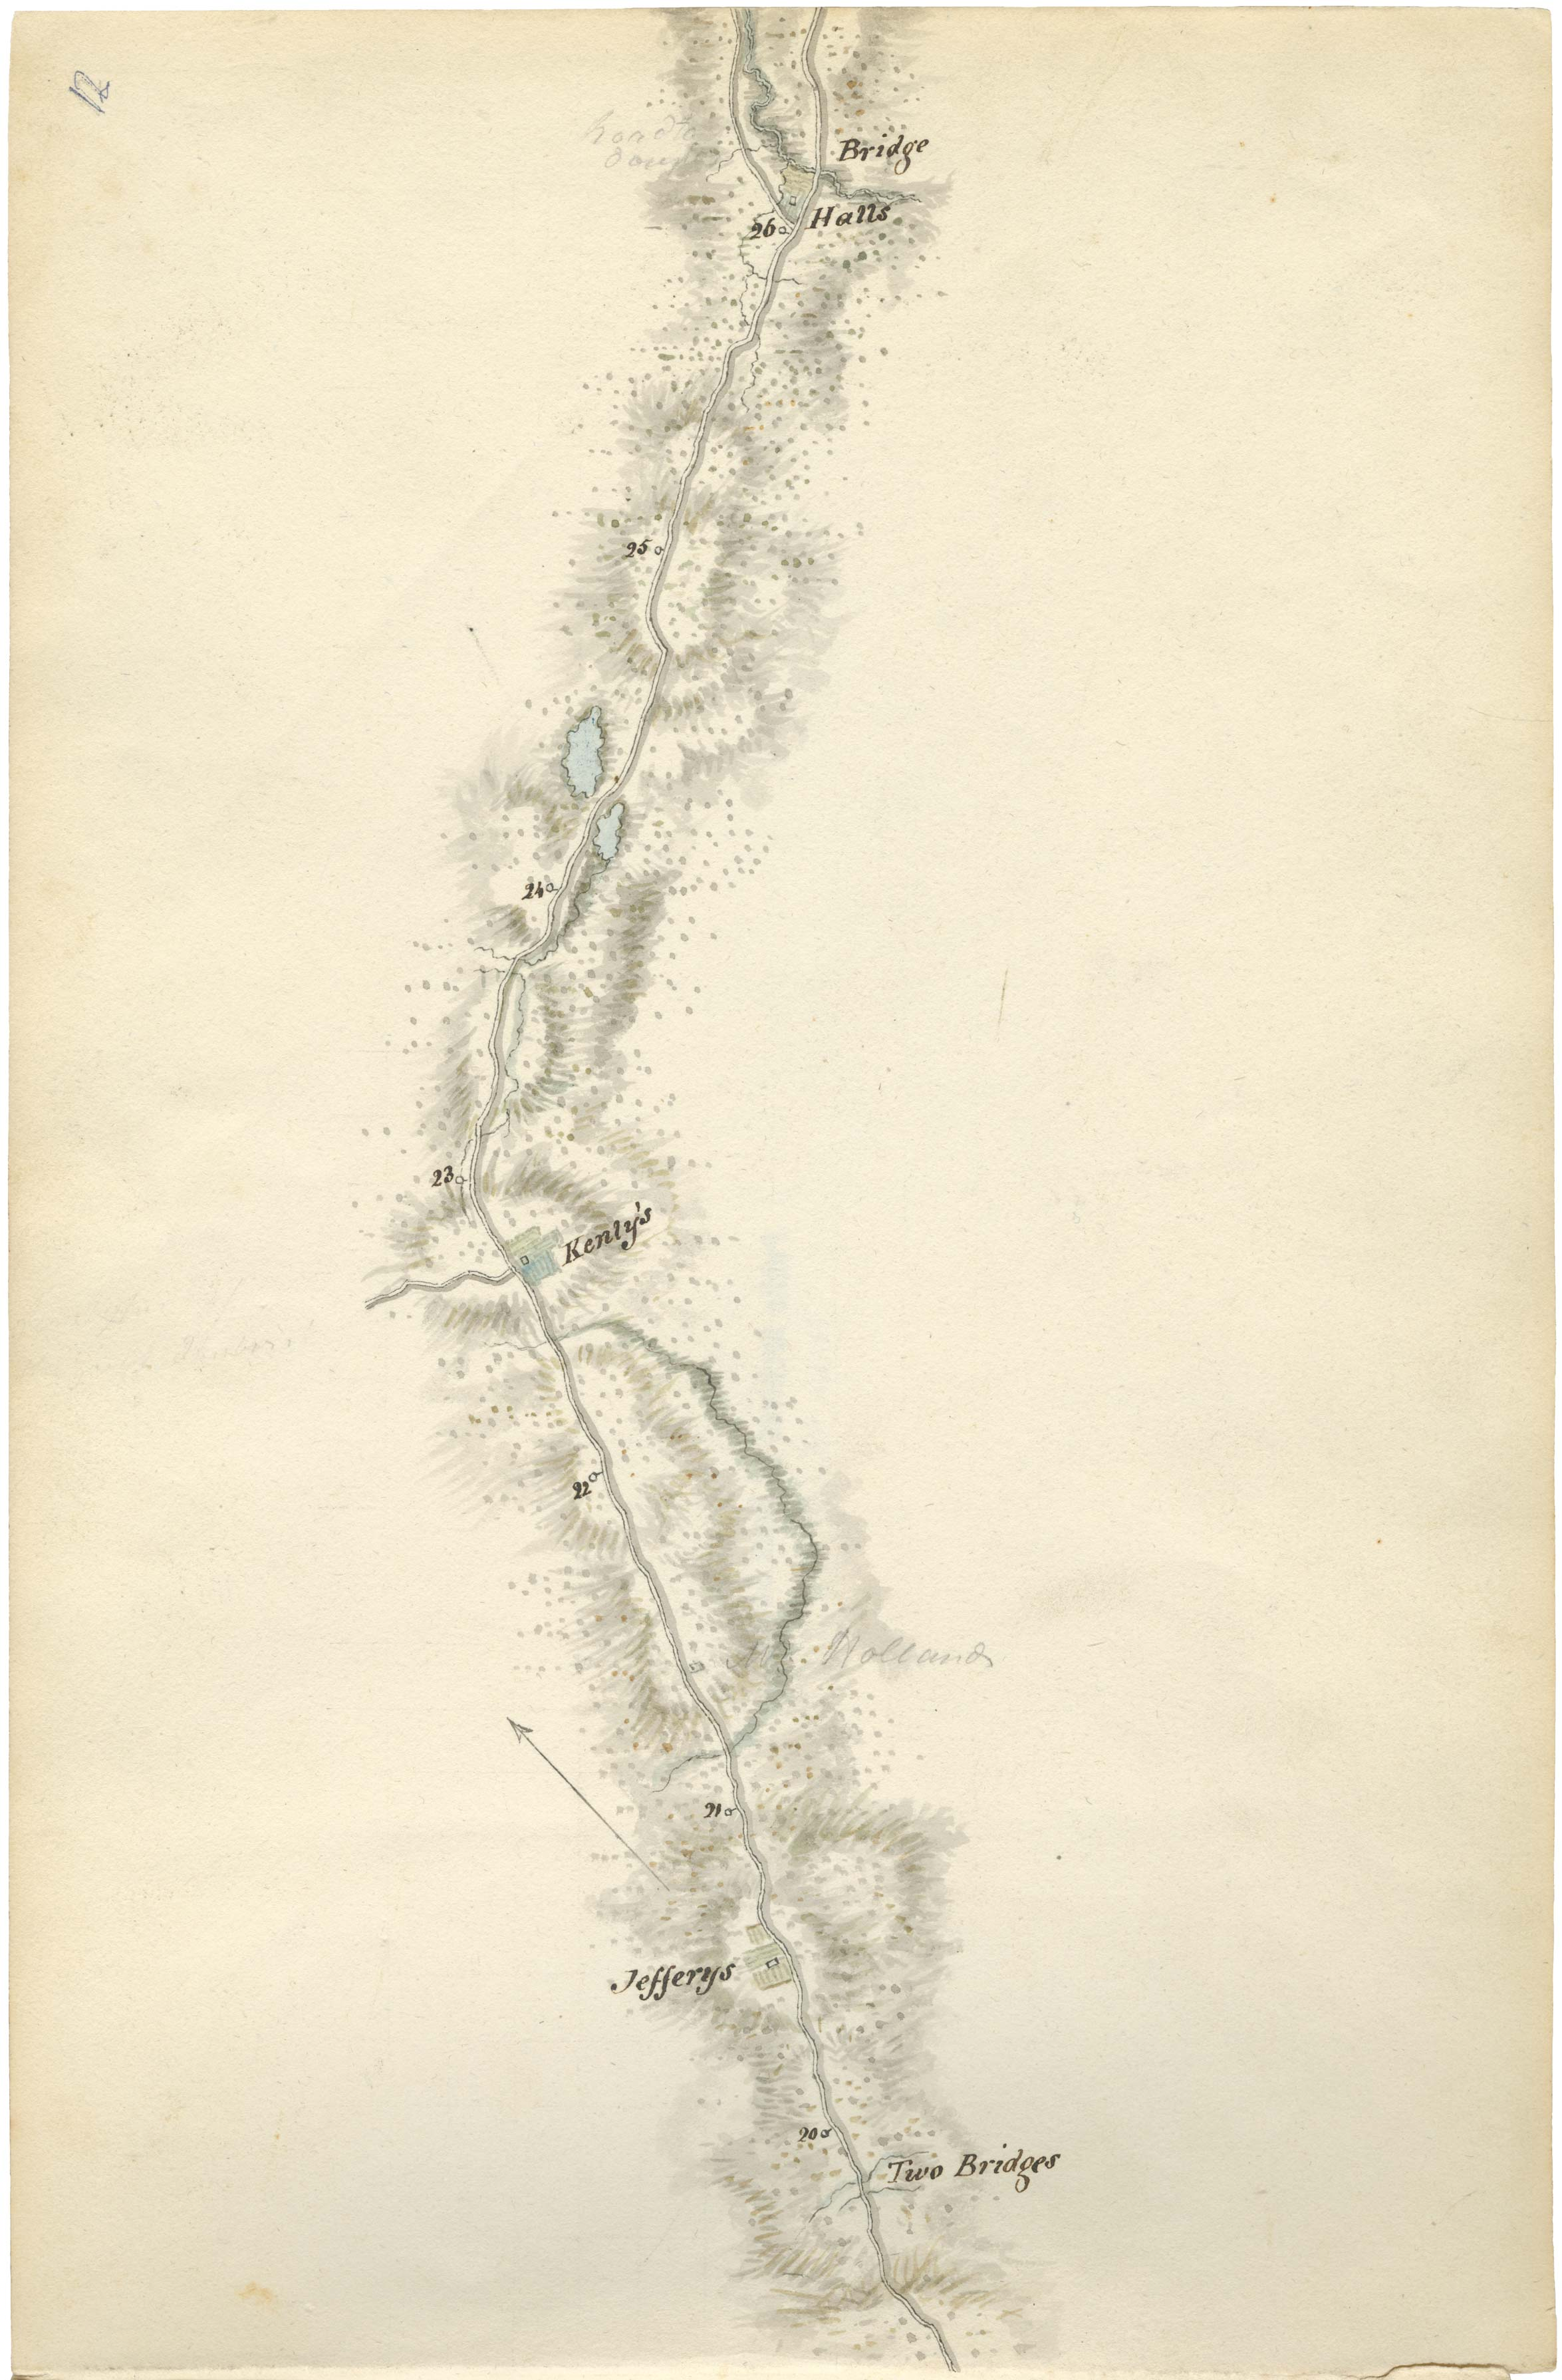 Woolford's Surveys - 1818  This is probably one of the earliest maps of the area, drawn by John Elliott Woolford. He was employed by George Ramsay, 9th Earl of Dalhousie as 'landscape and portrait painter and Draughtsman to His Excellency' between the years of 1817 to 1818. He was tasked with creating maps of the only two highways in the province at that time, Hwy 1 from Halifax to Windsor and Hwy 2 from Halifax to Truro. The Kently's farm was located on what is now Given Drive in Brookhill Estates and the Jeffery's farm was on Holland road. The Hall's farm (also called Bennery House or the Dalhousie Inn)stood at the end of the Grant Road in Enfield until it succumbed to a gale while under restoration in the mid 1980's .This 'Old Truro Highway' through Grand Lake Oakfield still exists in parts today. Although much has been lost to development, many stretches lined with massive white pine are the same road once traveled by the Earl of Dalhousie 200 years ago.